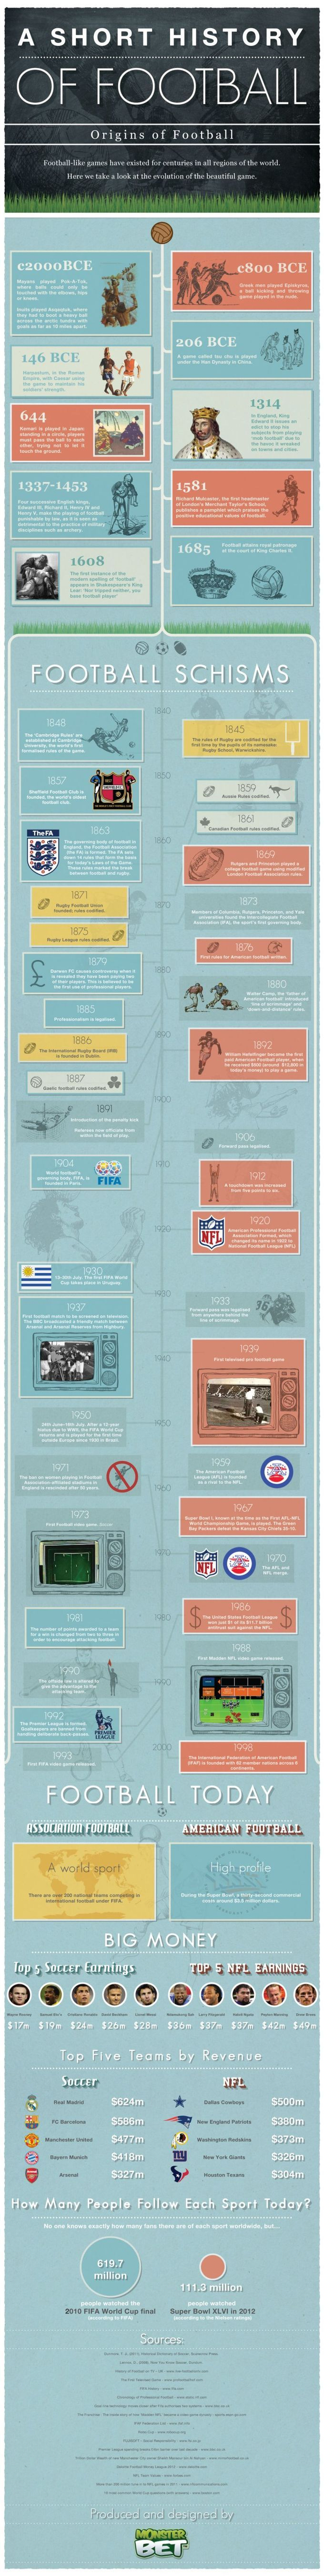 The World Cup draw takes place later - for now, marvel in the history of the beautiful game.